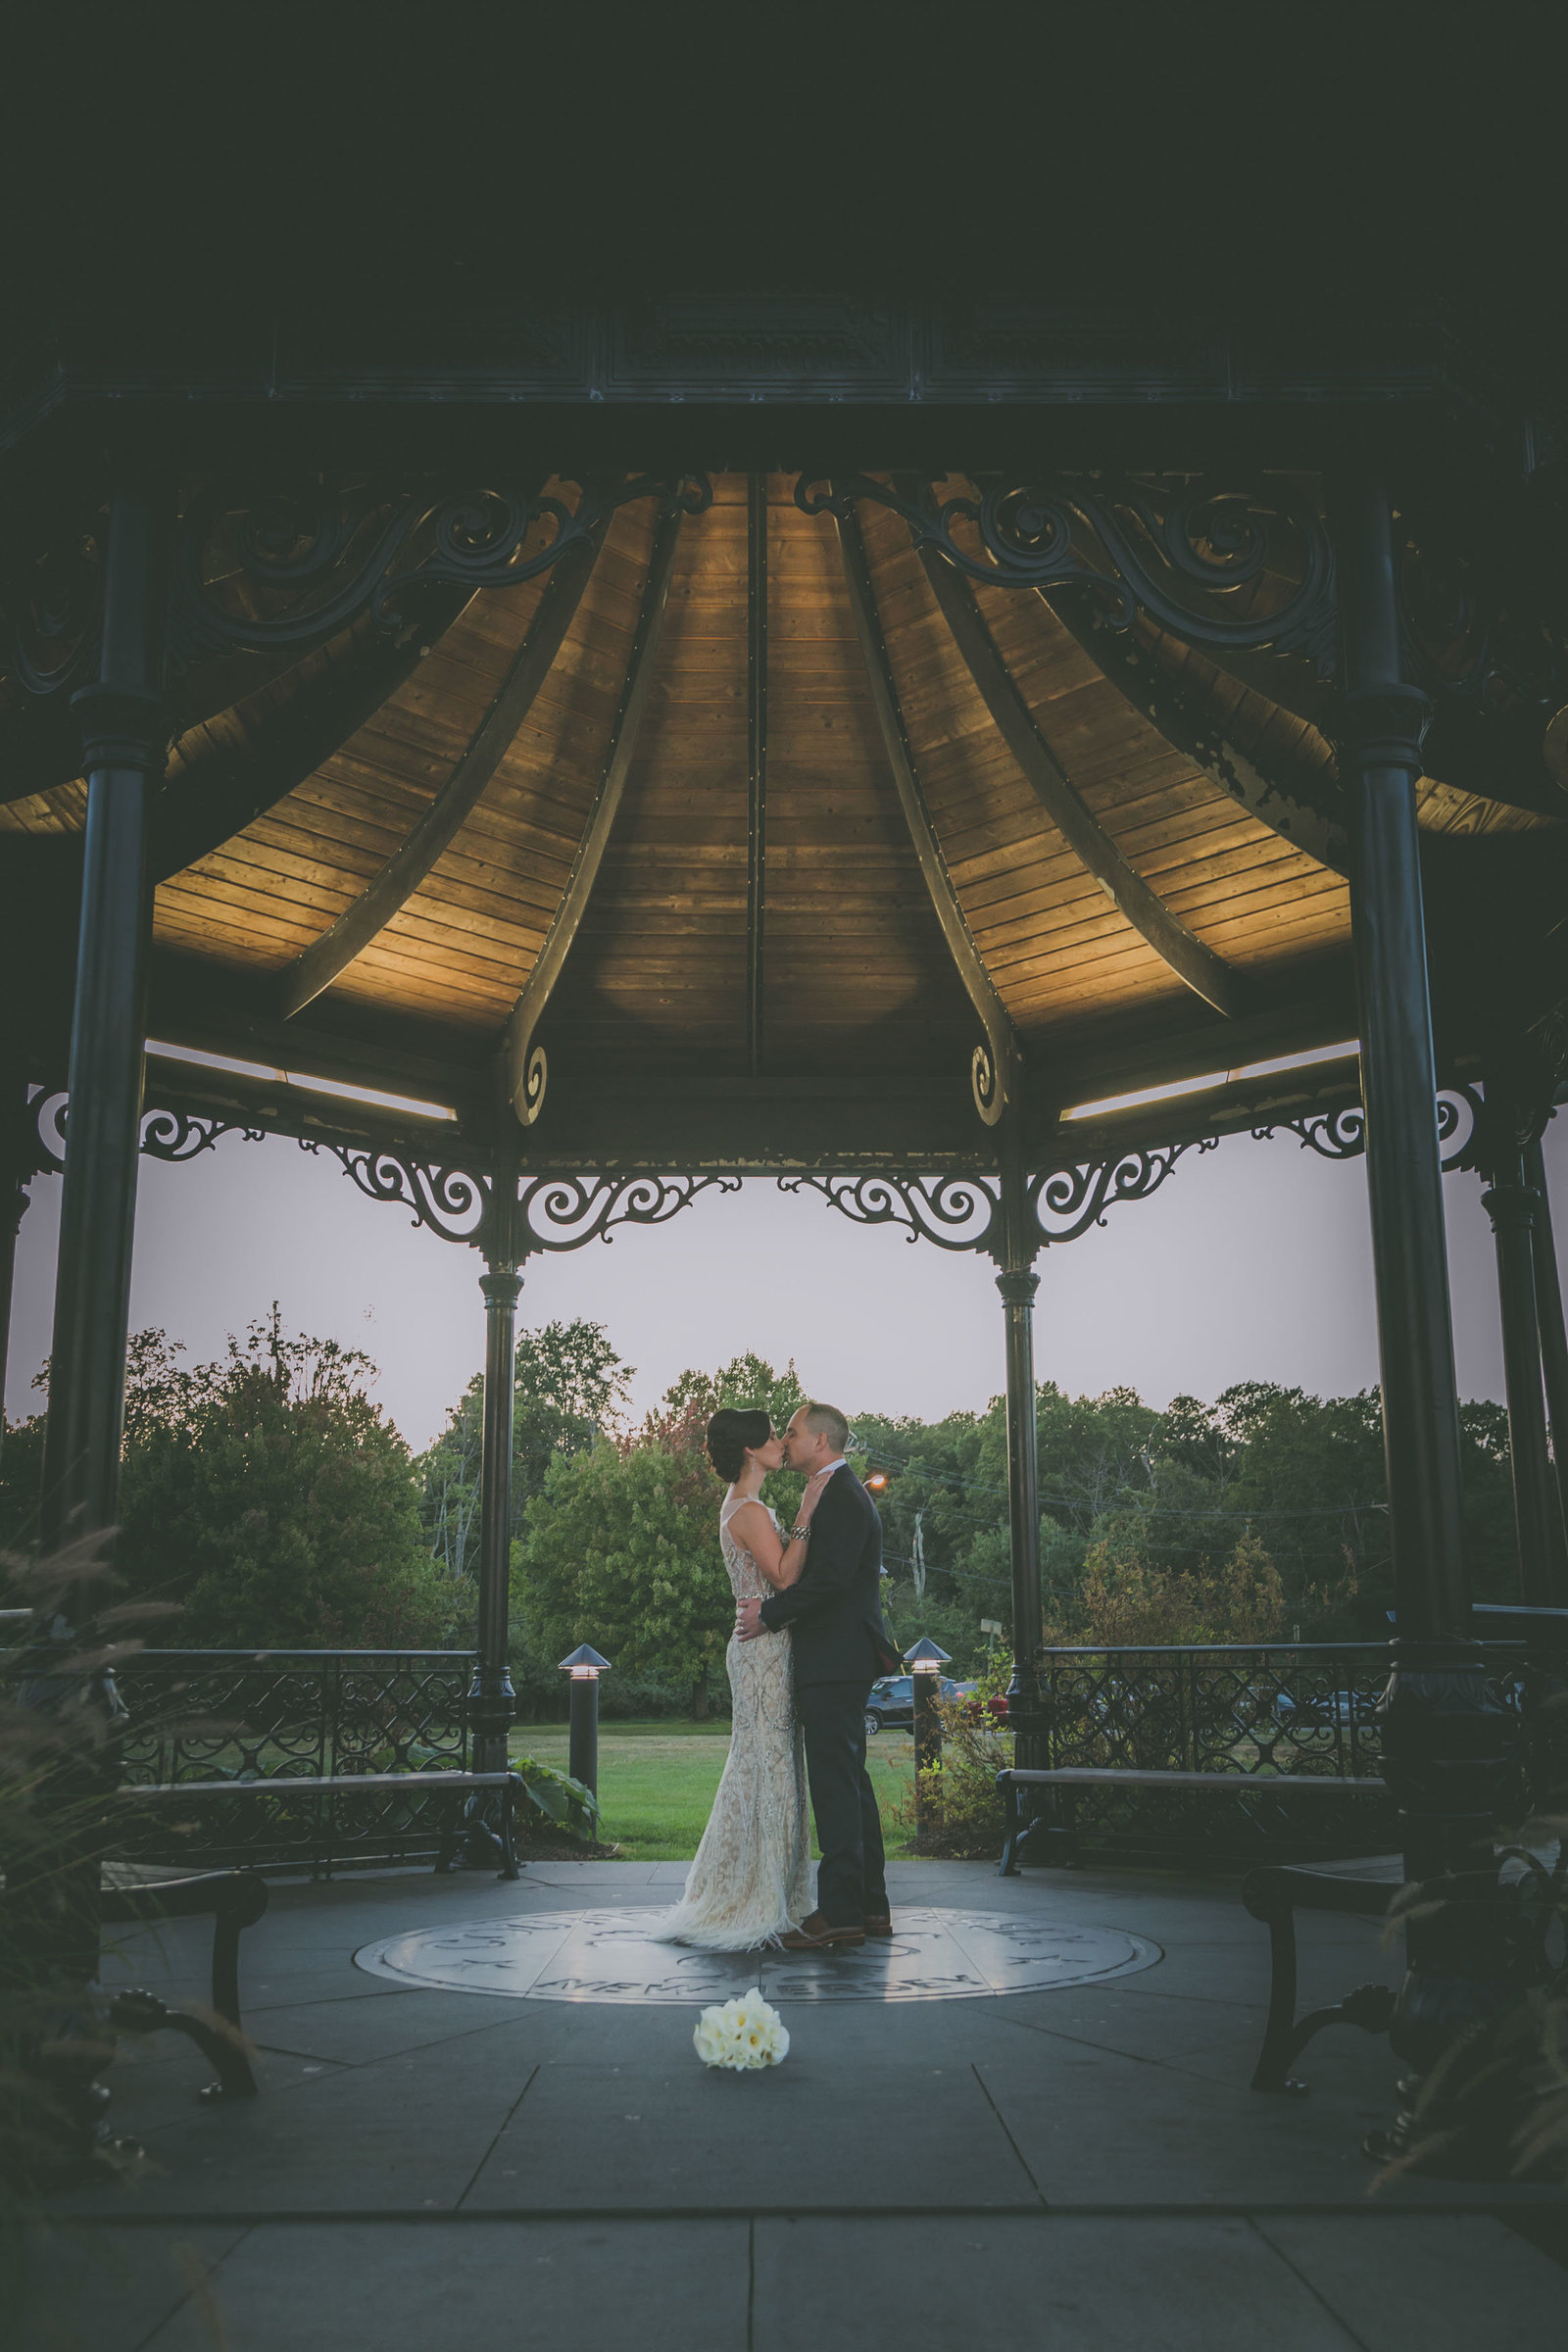 Bride and groom kiss under a gazebo in New Jersey.